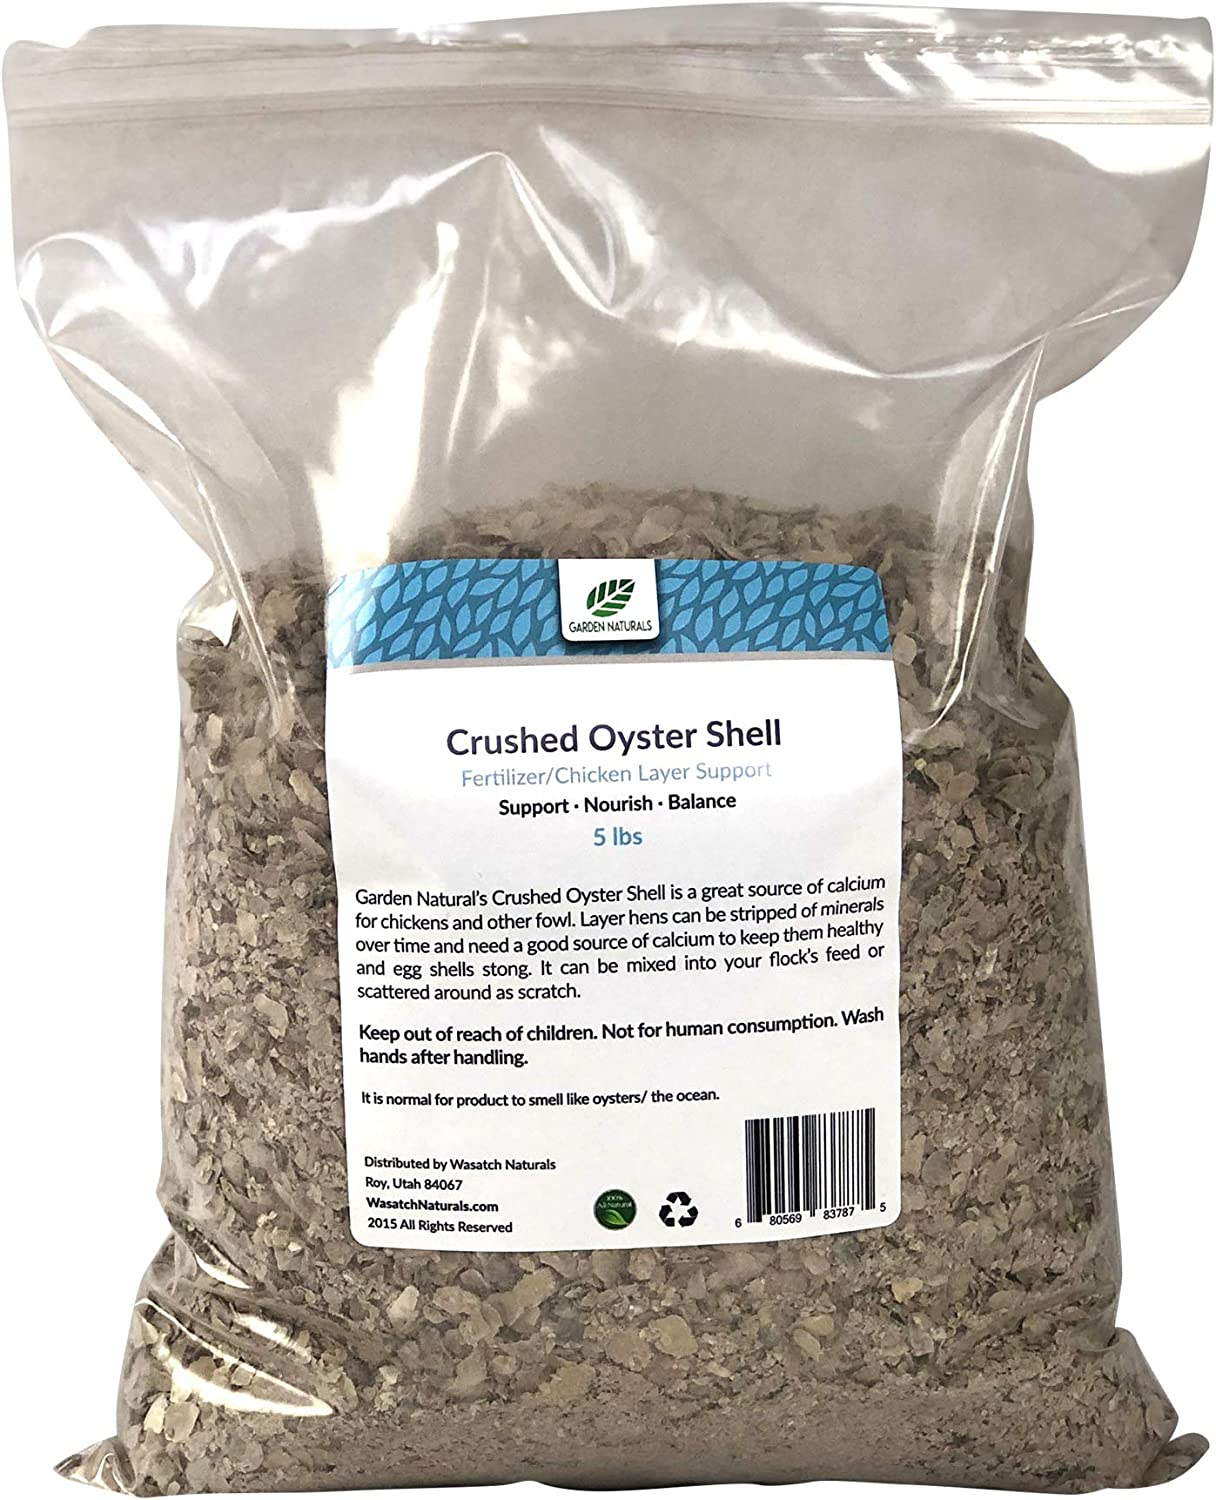 5 Pounds All Natural Crushed Oyster Shells for Poultry Birds and Gardens - Garden Naturals